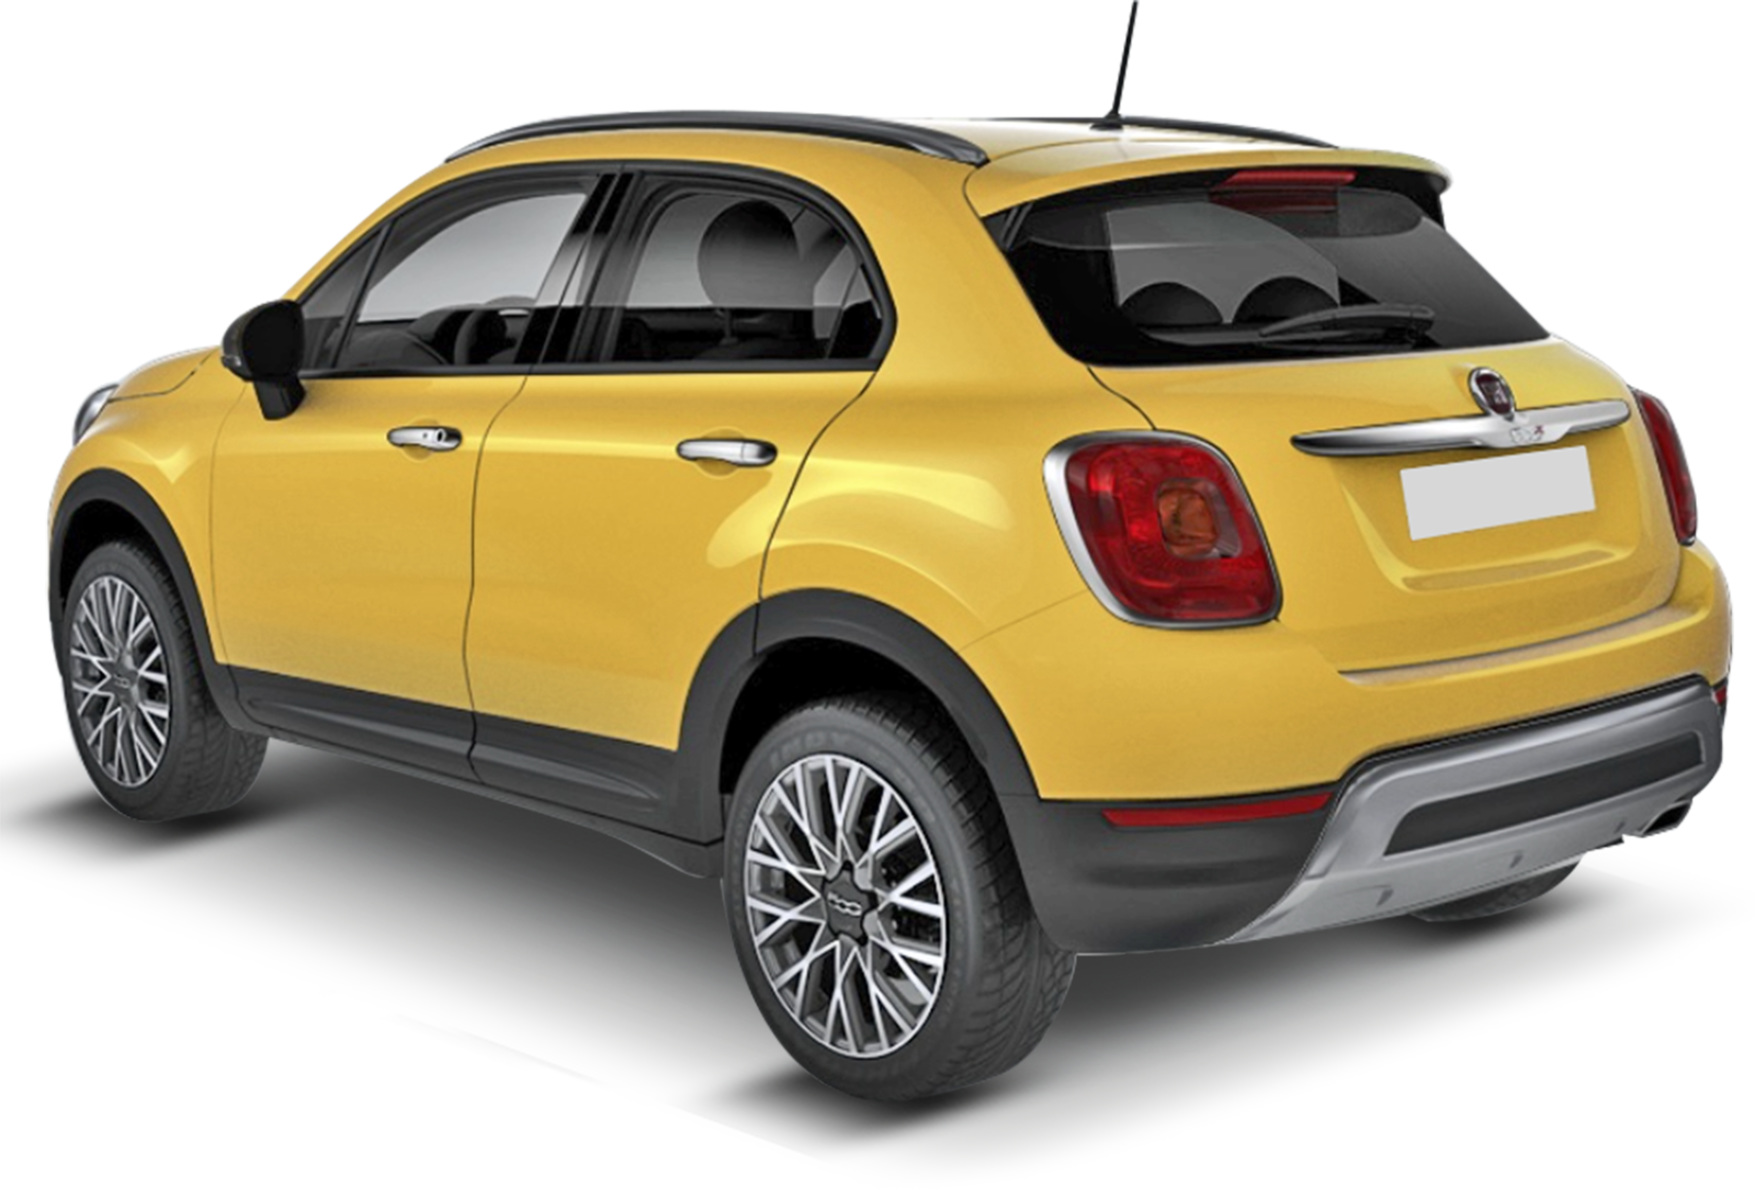 fiat 500 4x4 prix fiat 500 x 2 0 multijet 140 cross 4x4 neuve diesel 5 prix fiat 500x 2015 le. Black Bedroom Furniture Sets. Home Design Ideas